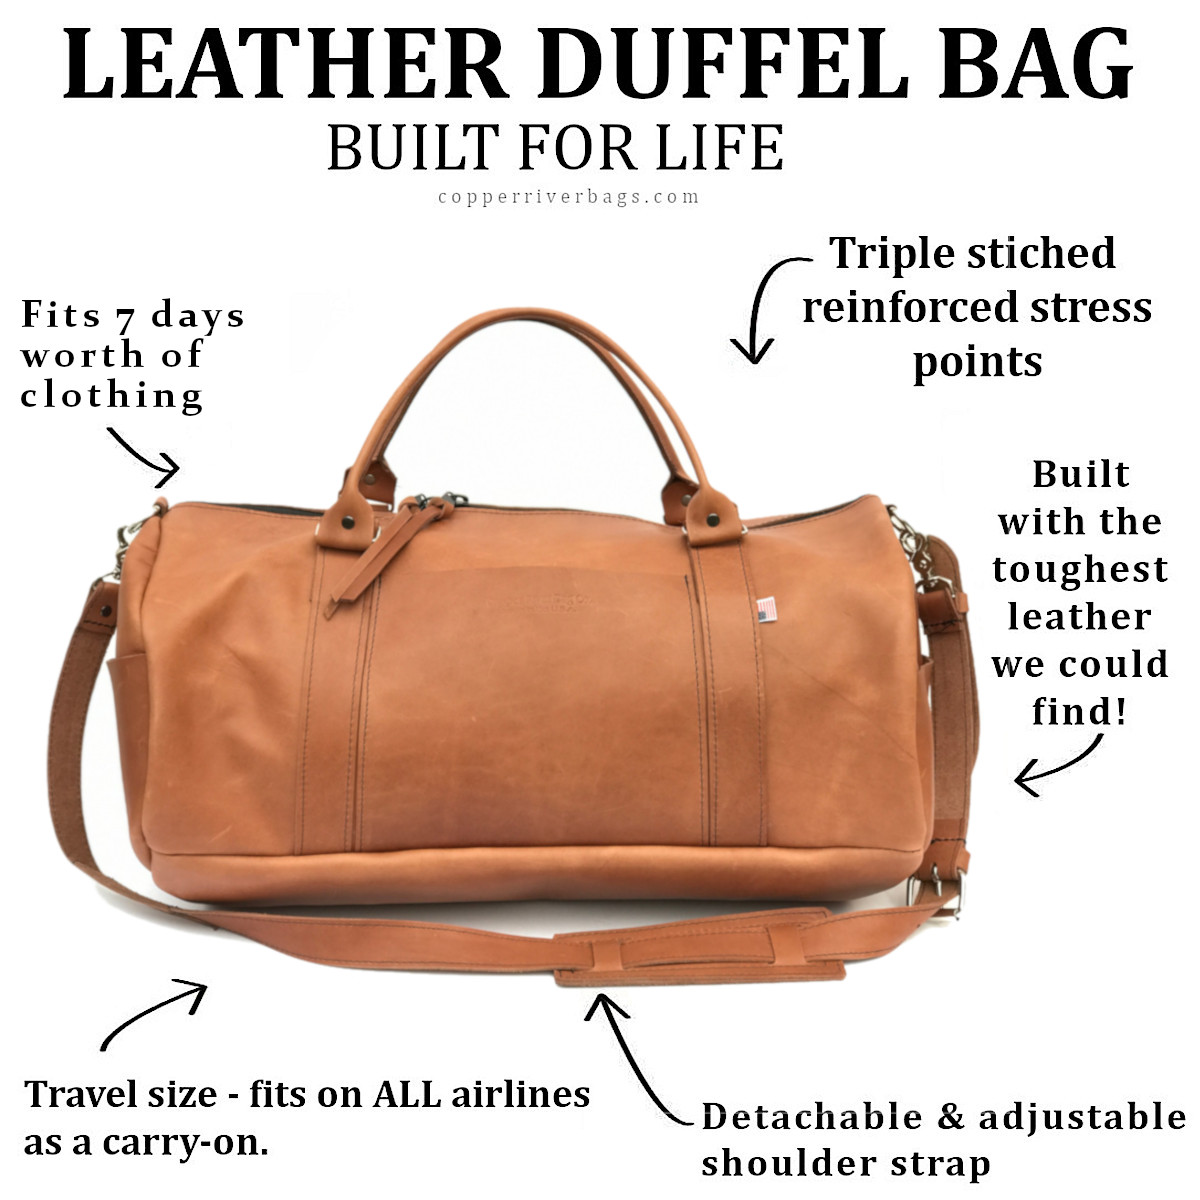 copper-river-duffel-bag-google-disply-ad-logo-1200-x-1200-0978976954.jpg